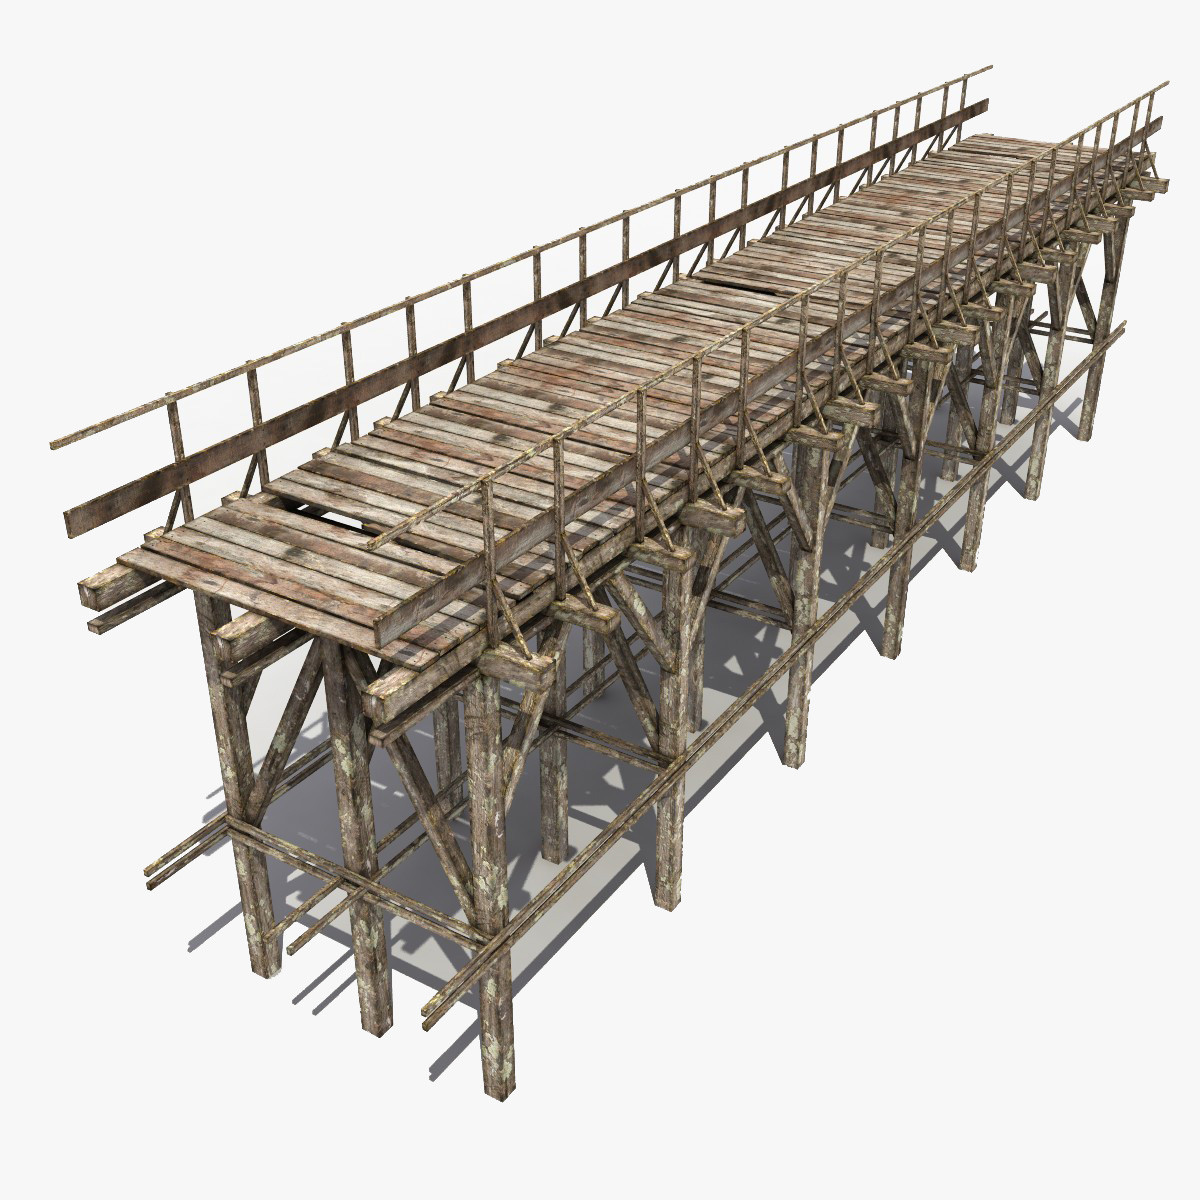 wooden_bridge_6_c_00000.jpg